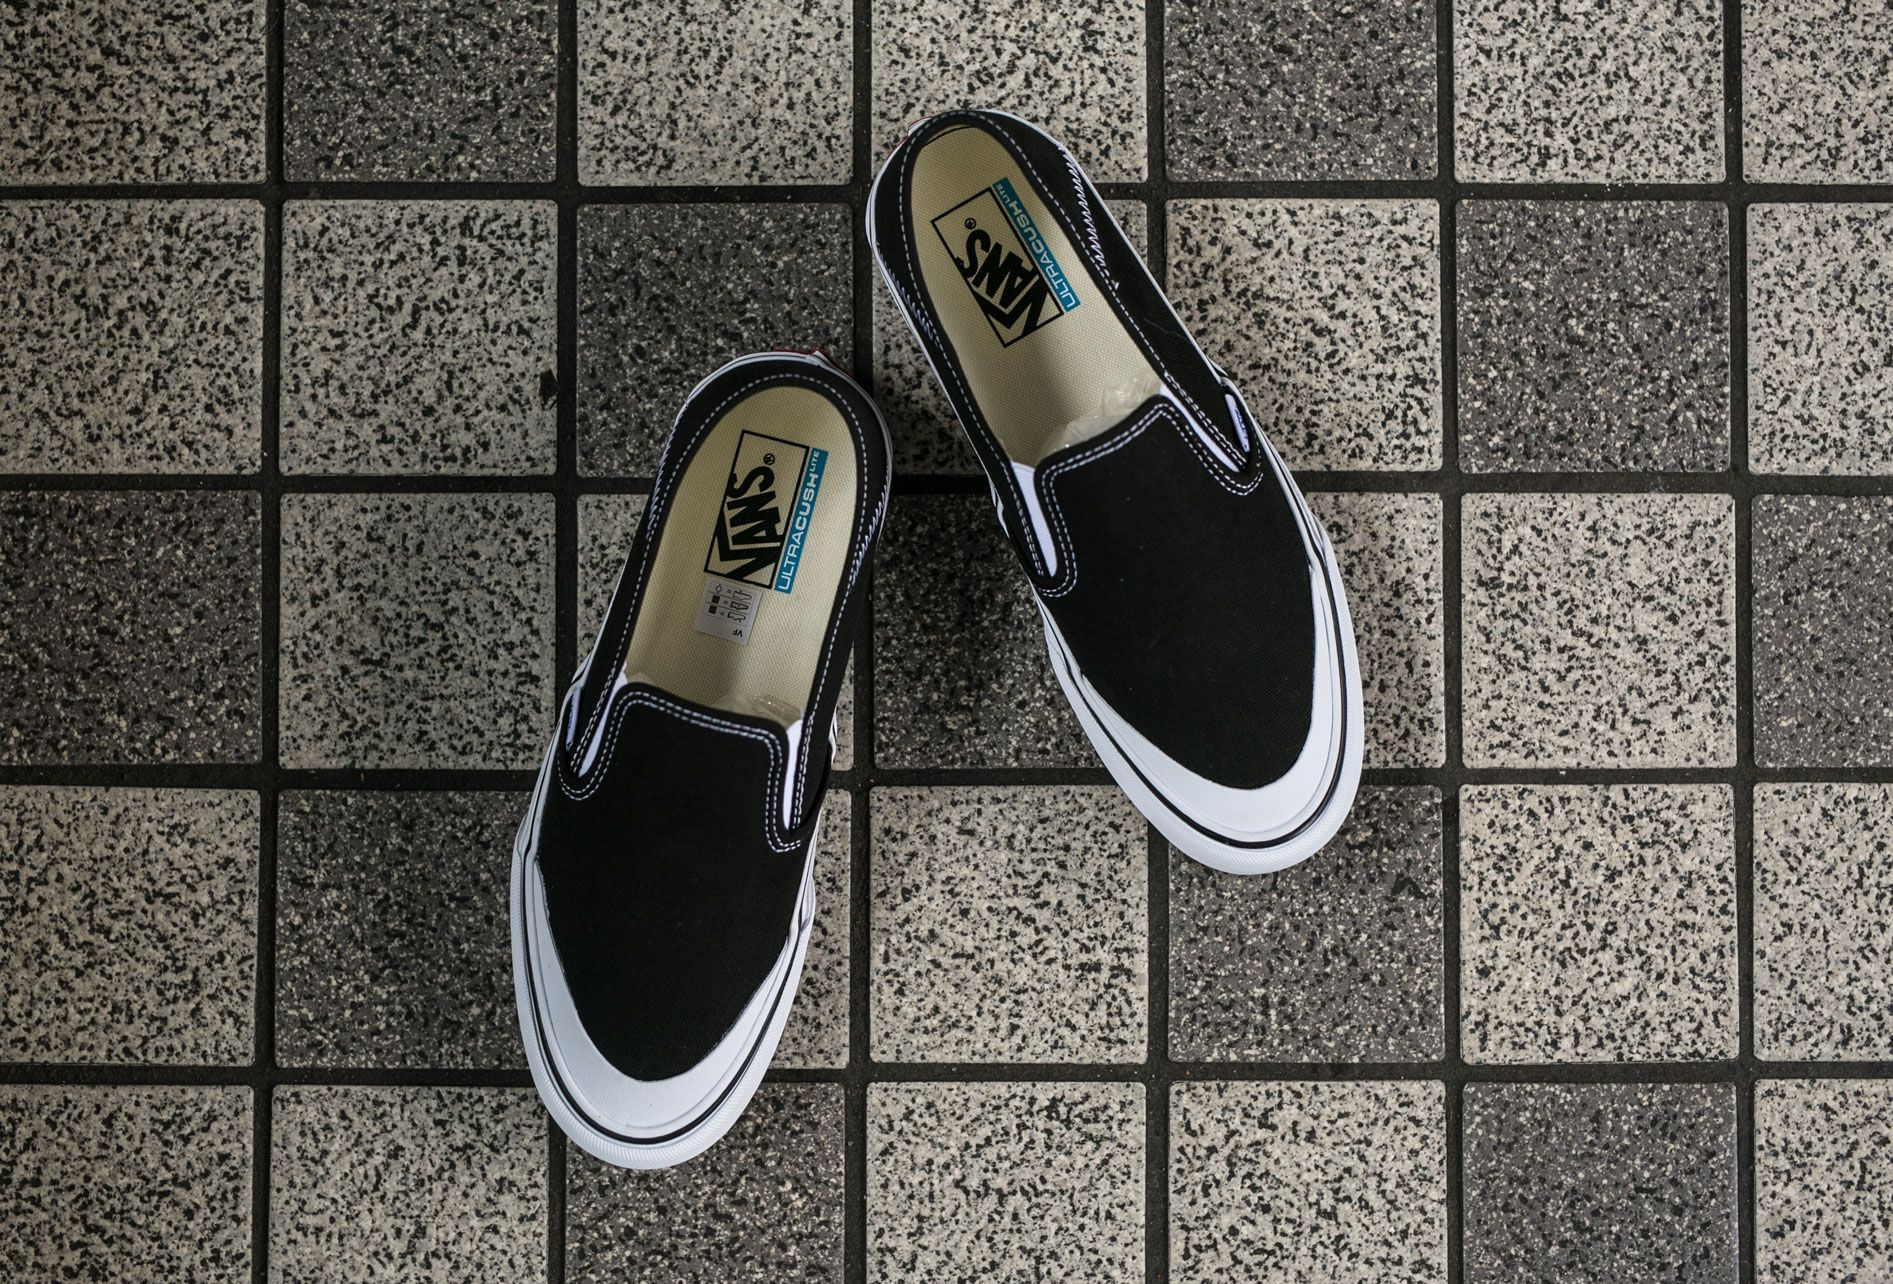 4452f831be367d The Slip-On SF combines a deconstructed classic low profile silhouette with  the Vans Surf SF build to create an upgraded